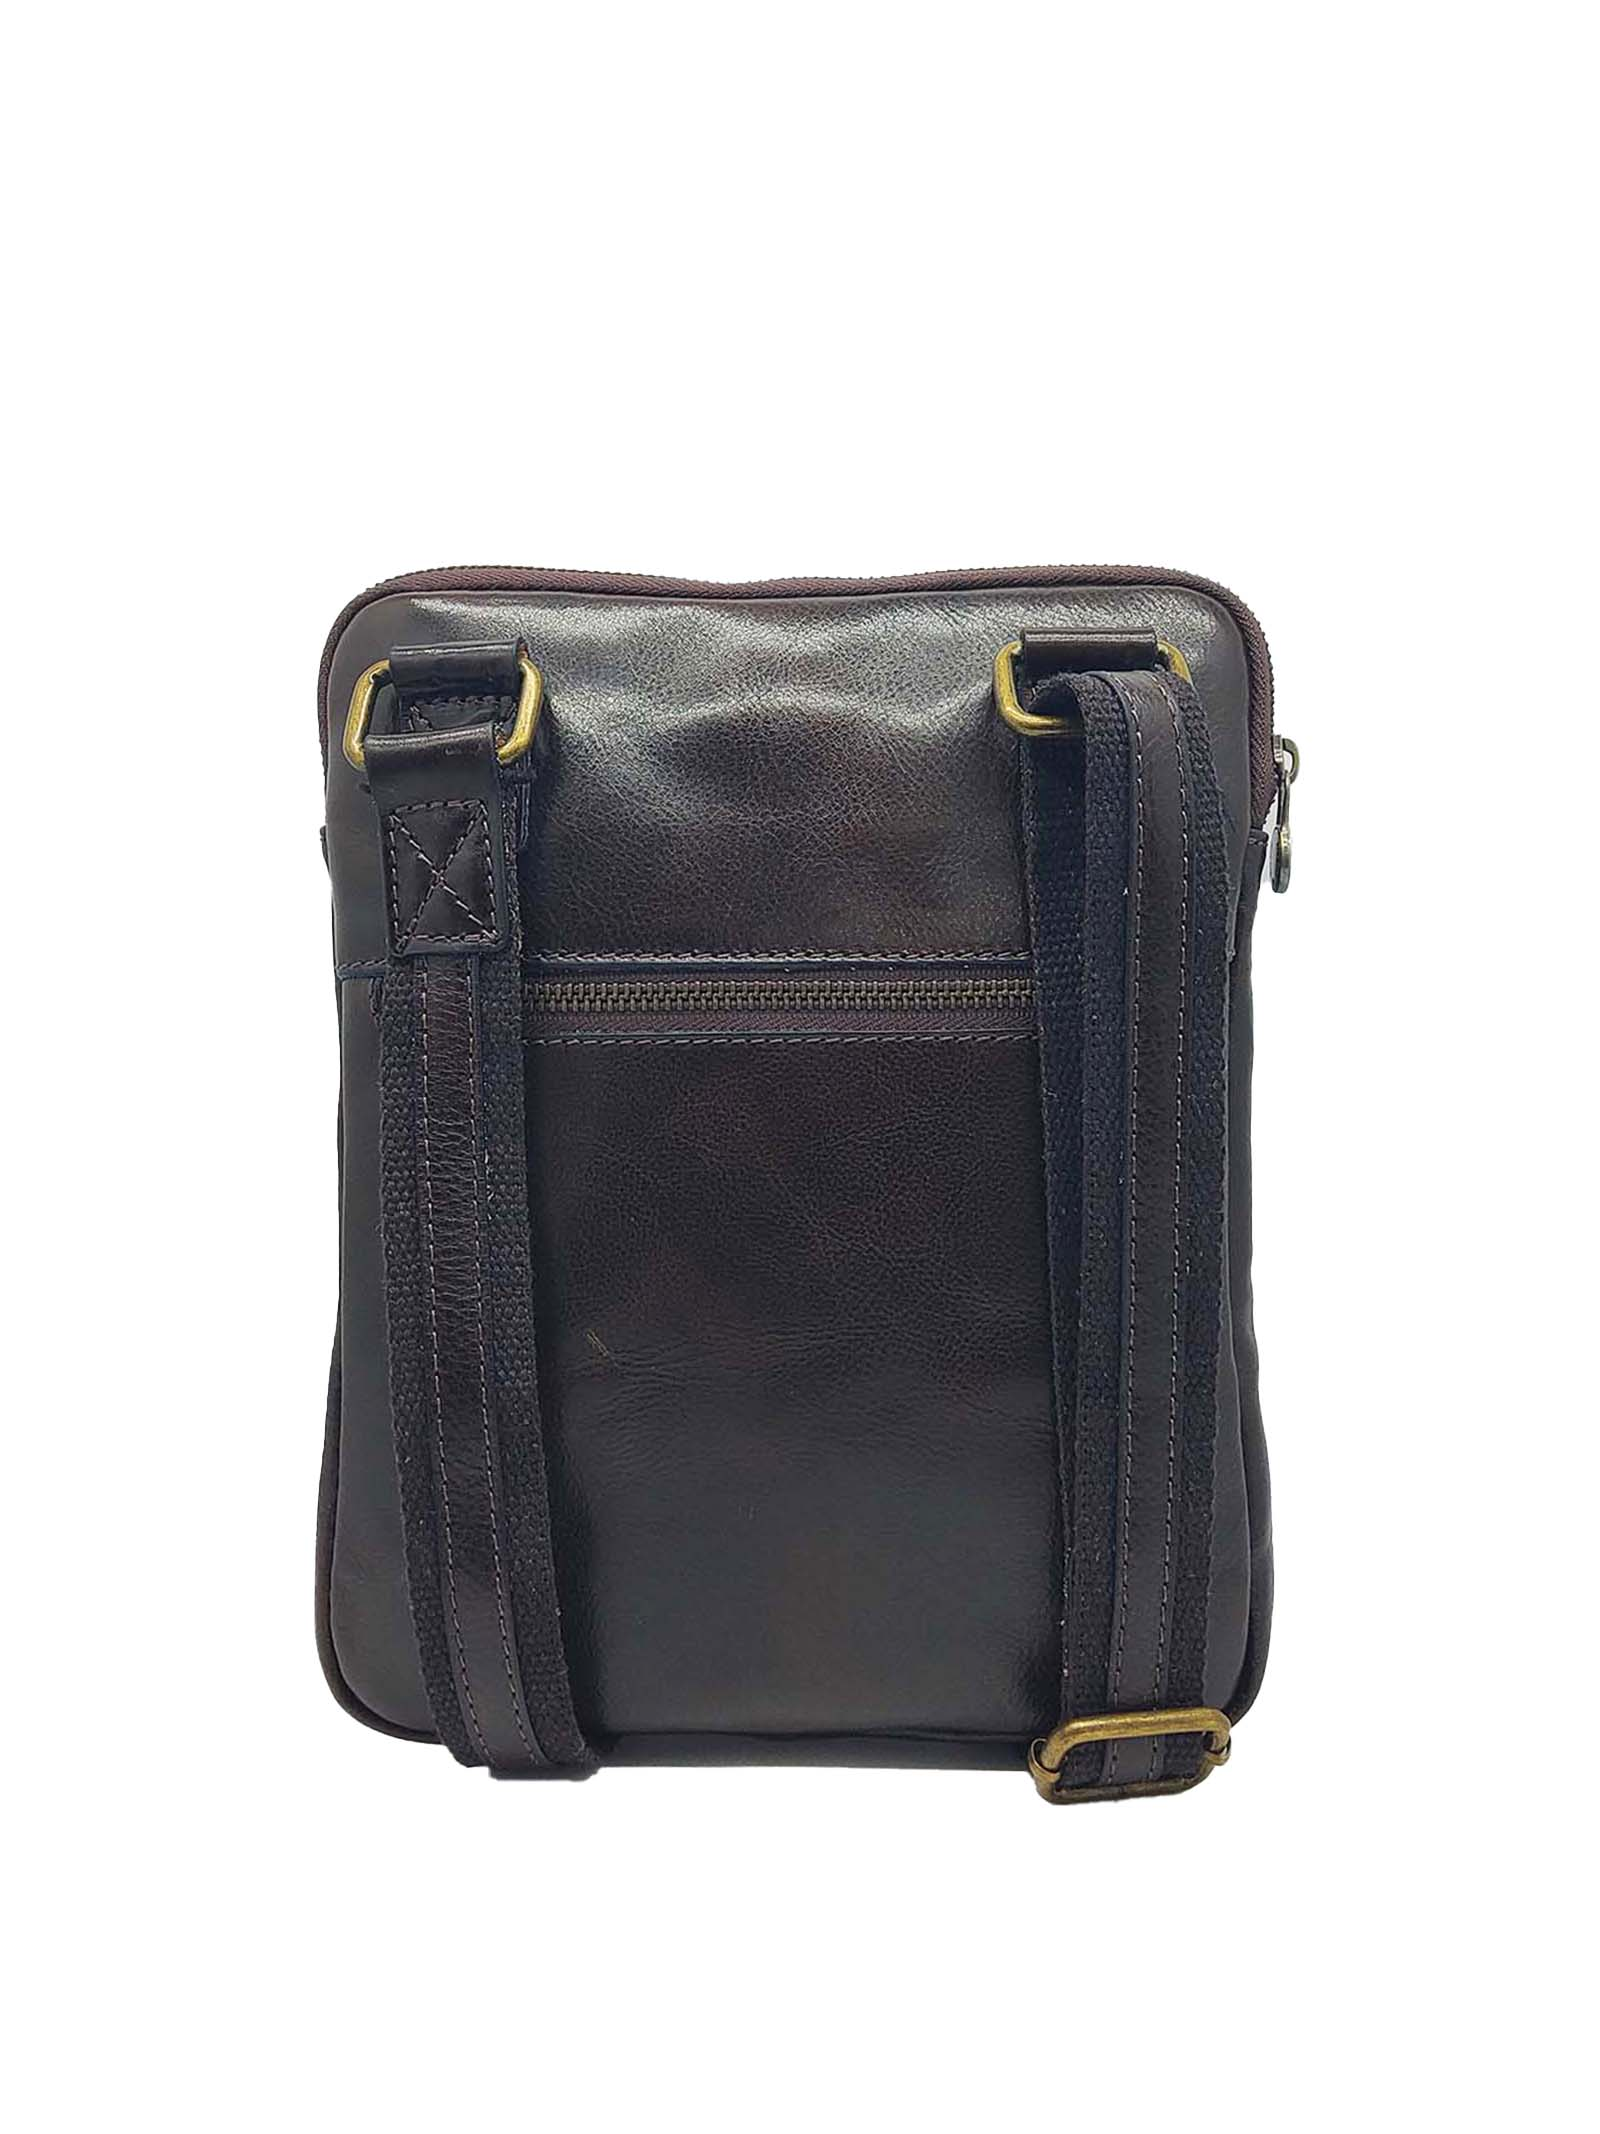 Men's Accessories Small Bag in Dark Brown Leather with Shoulder Strap and Zip Spatarella | Bags and backpacks | PEU0201013